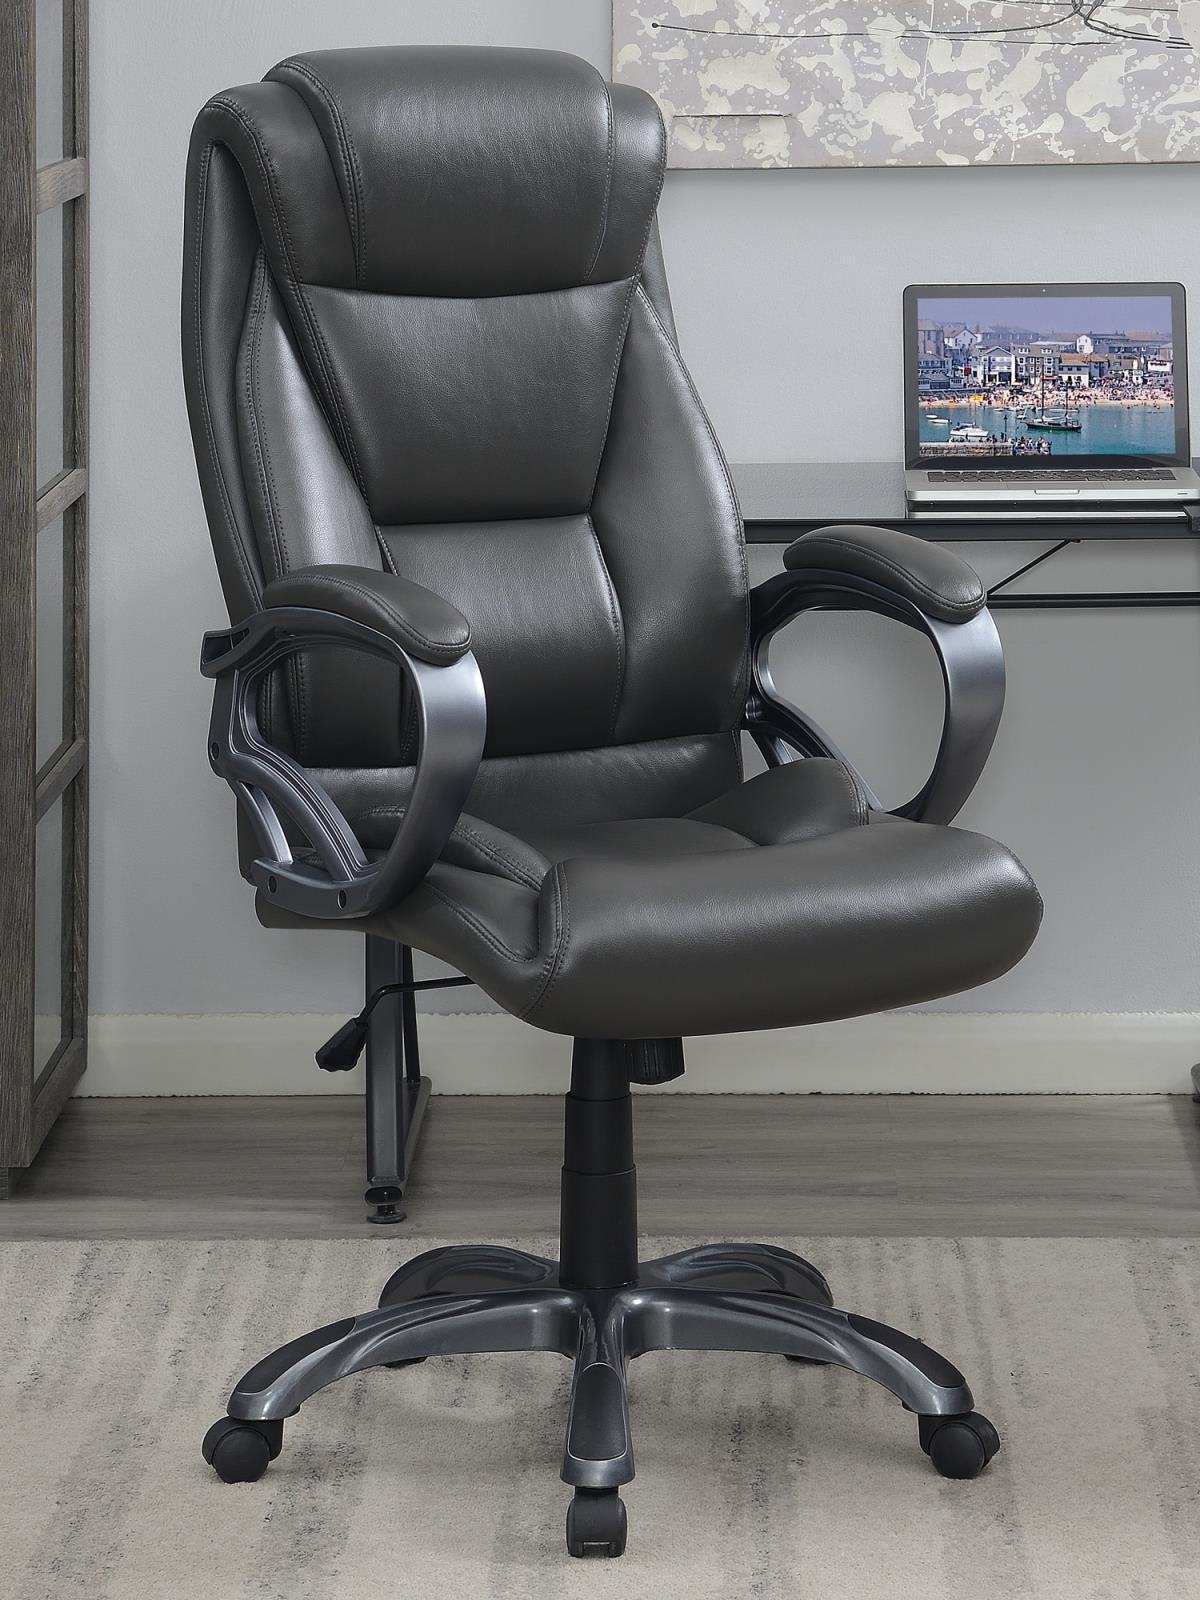 Grey - Upholstered High Back Office Chair Grey